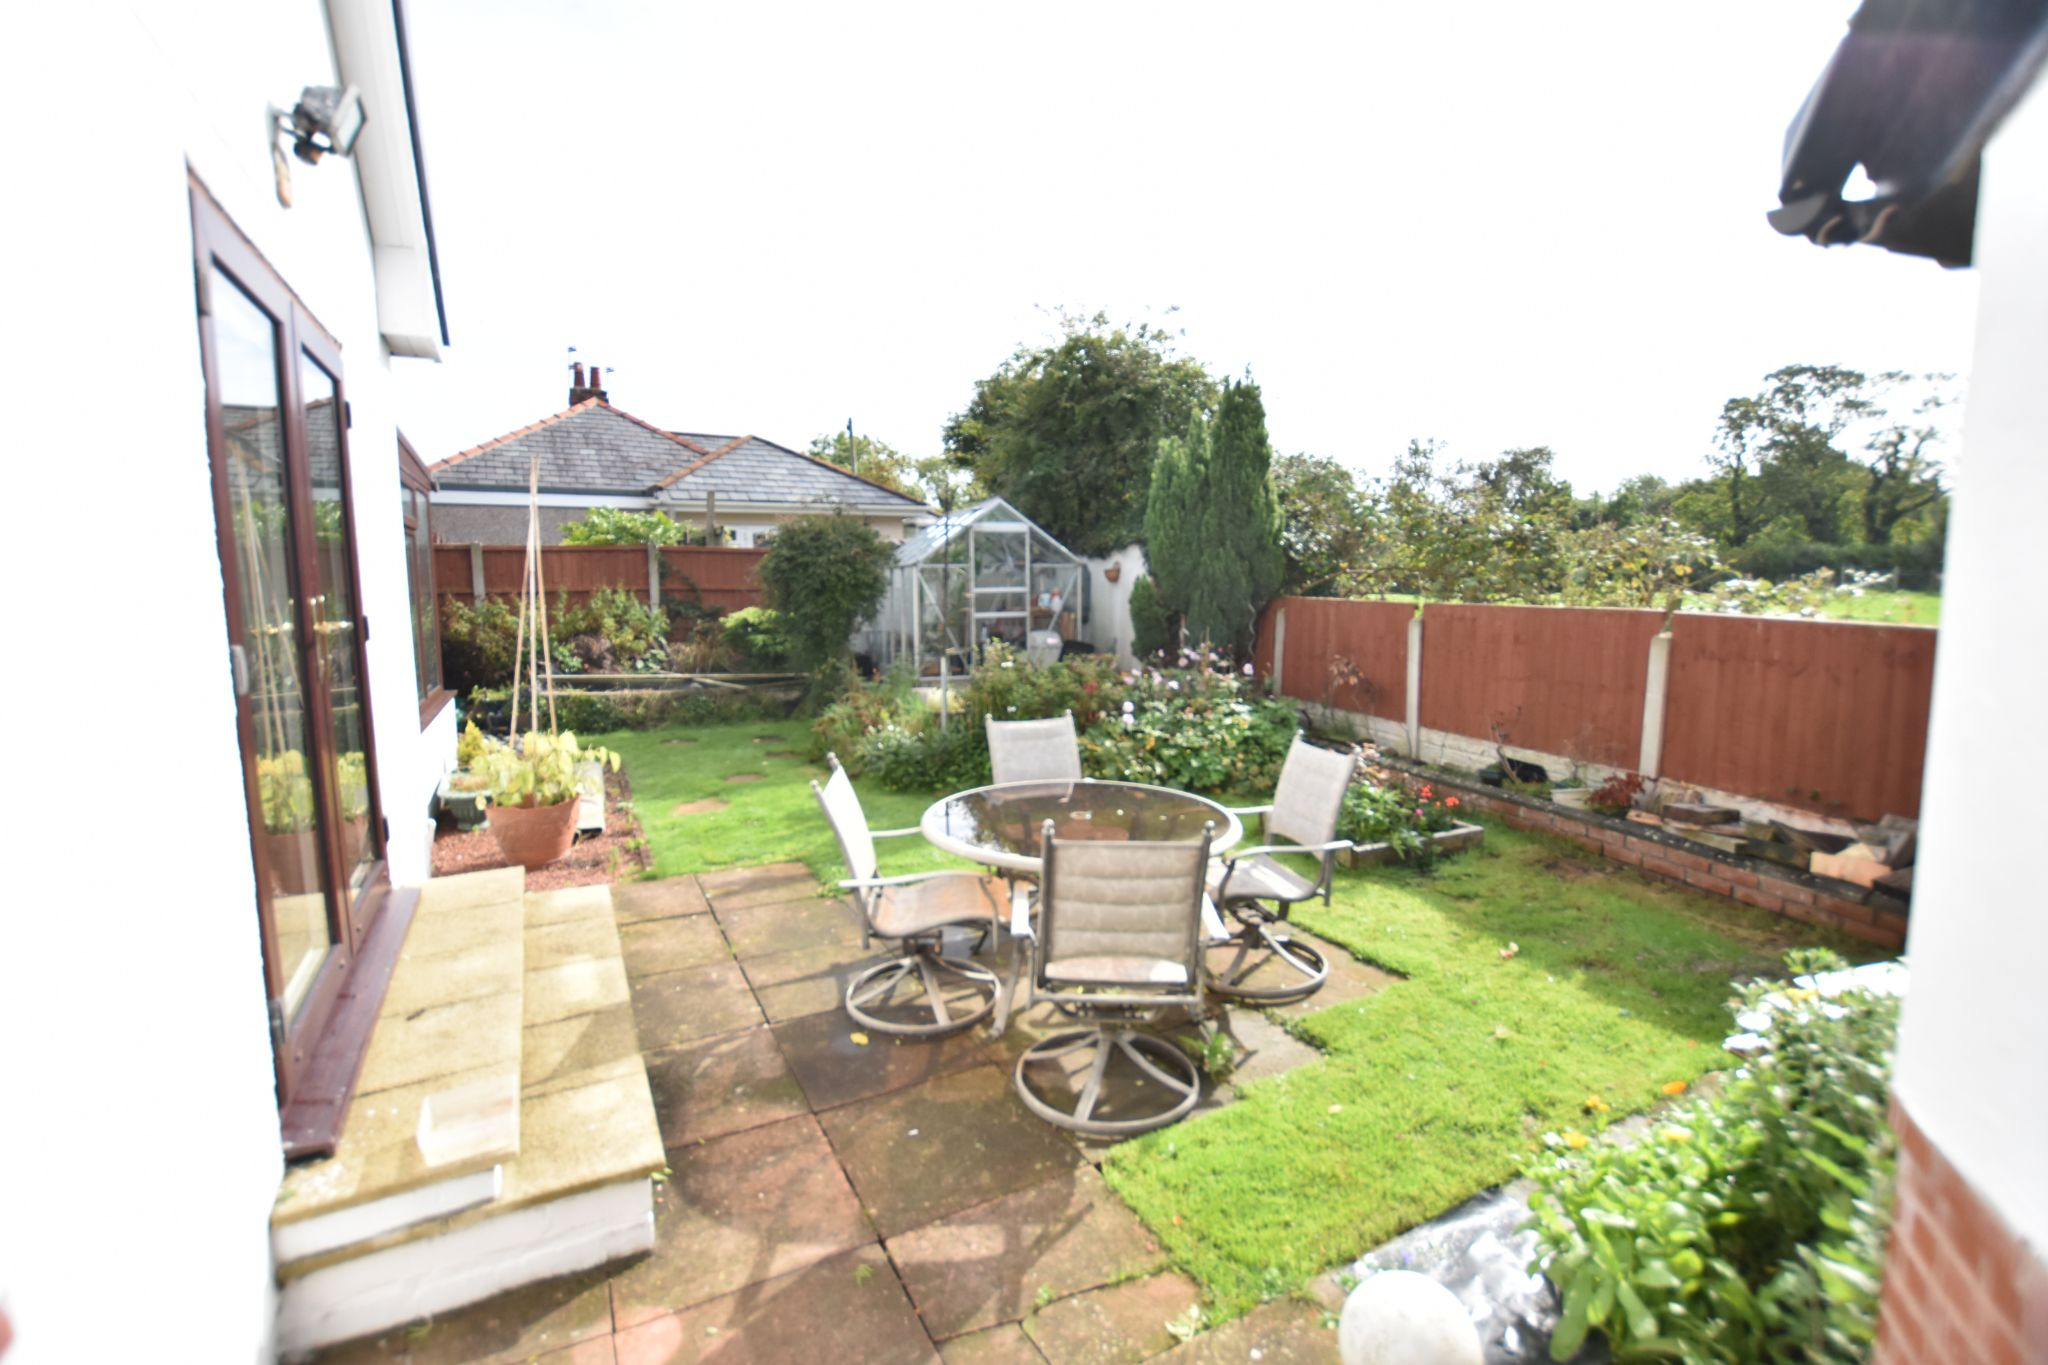 Image 2 of 4 of GARDEN, on Accommodation Comprising for